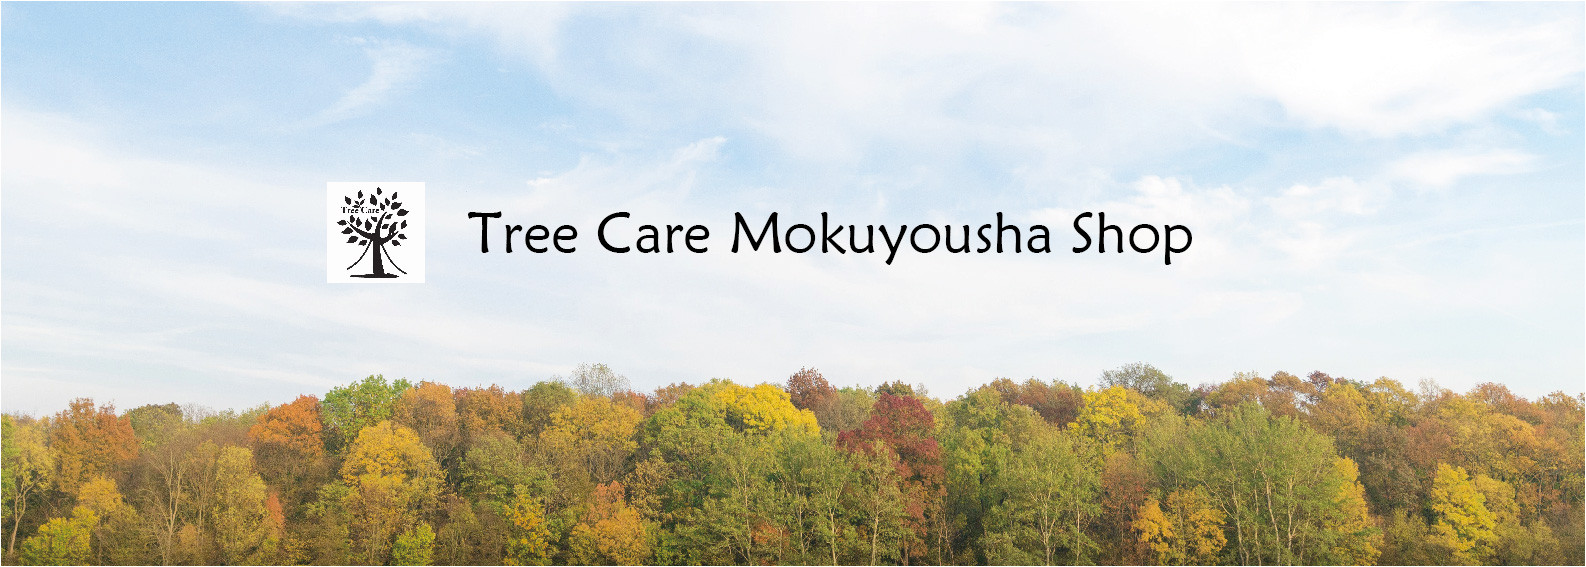 Tree Care Mokuyousha